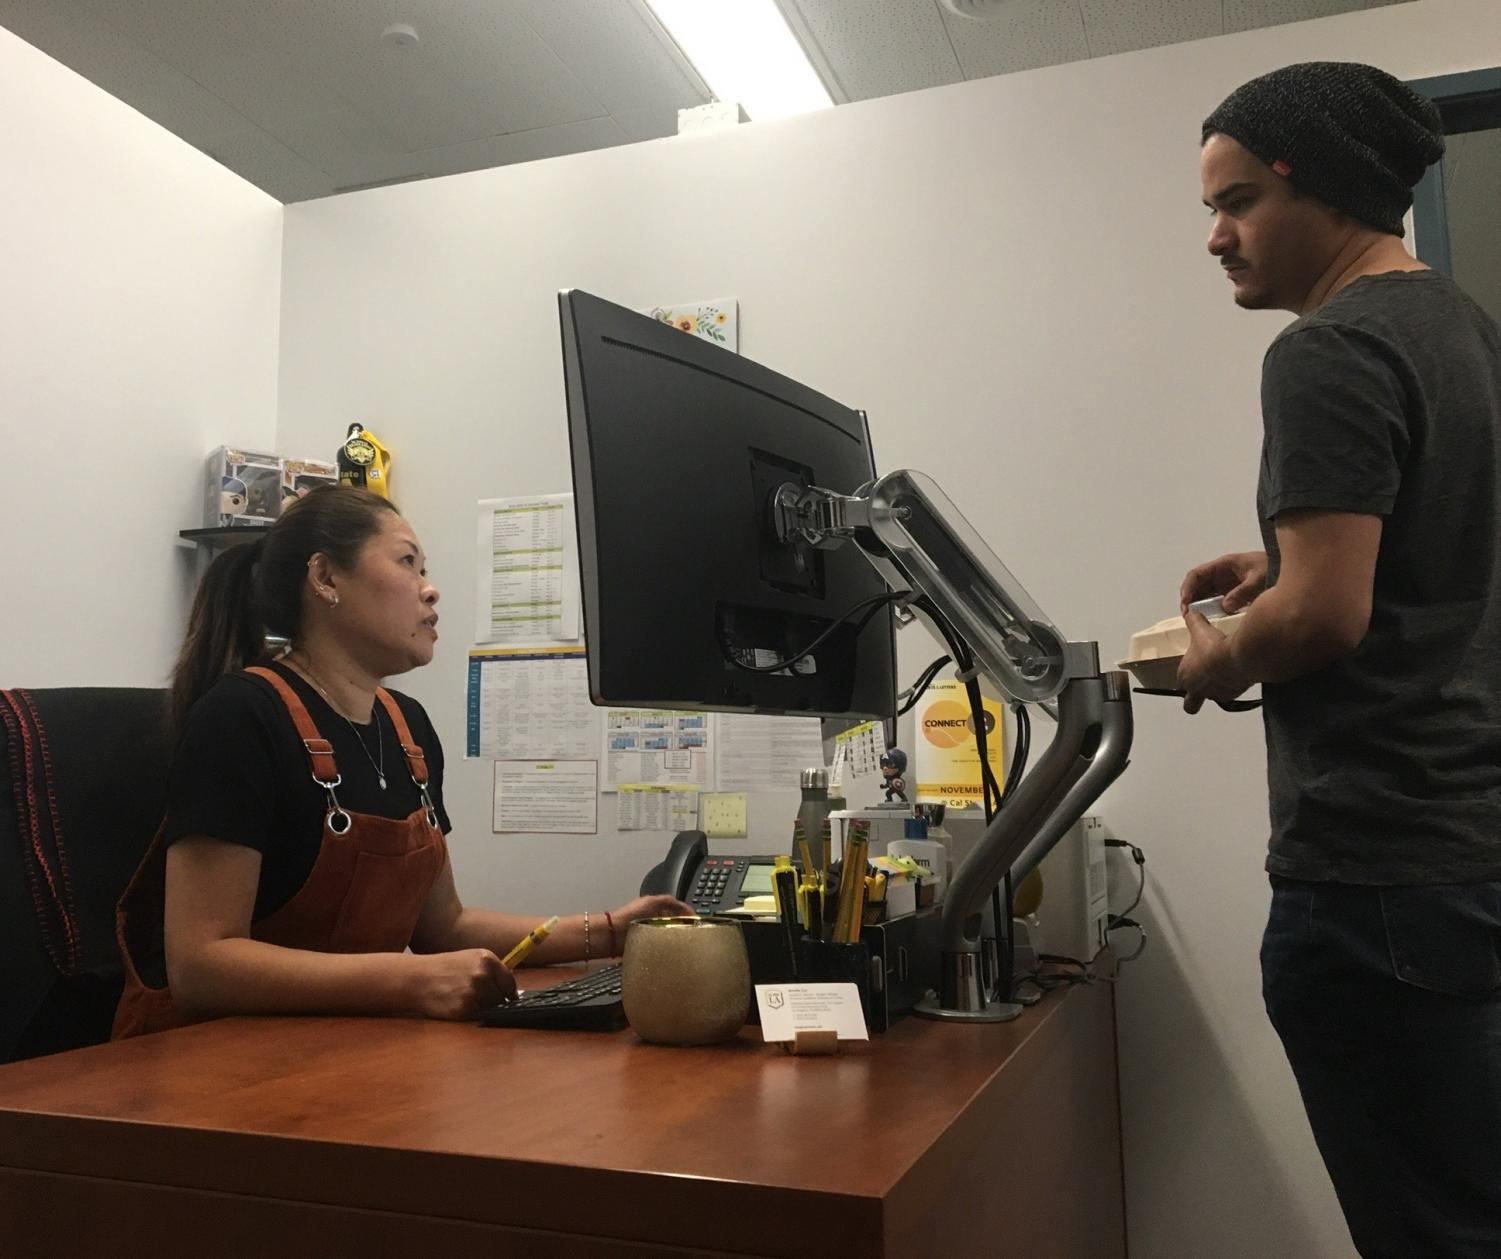 Advisor Jennifer Luo and front desk support Johnny Benitez discuss the appointment schedule.